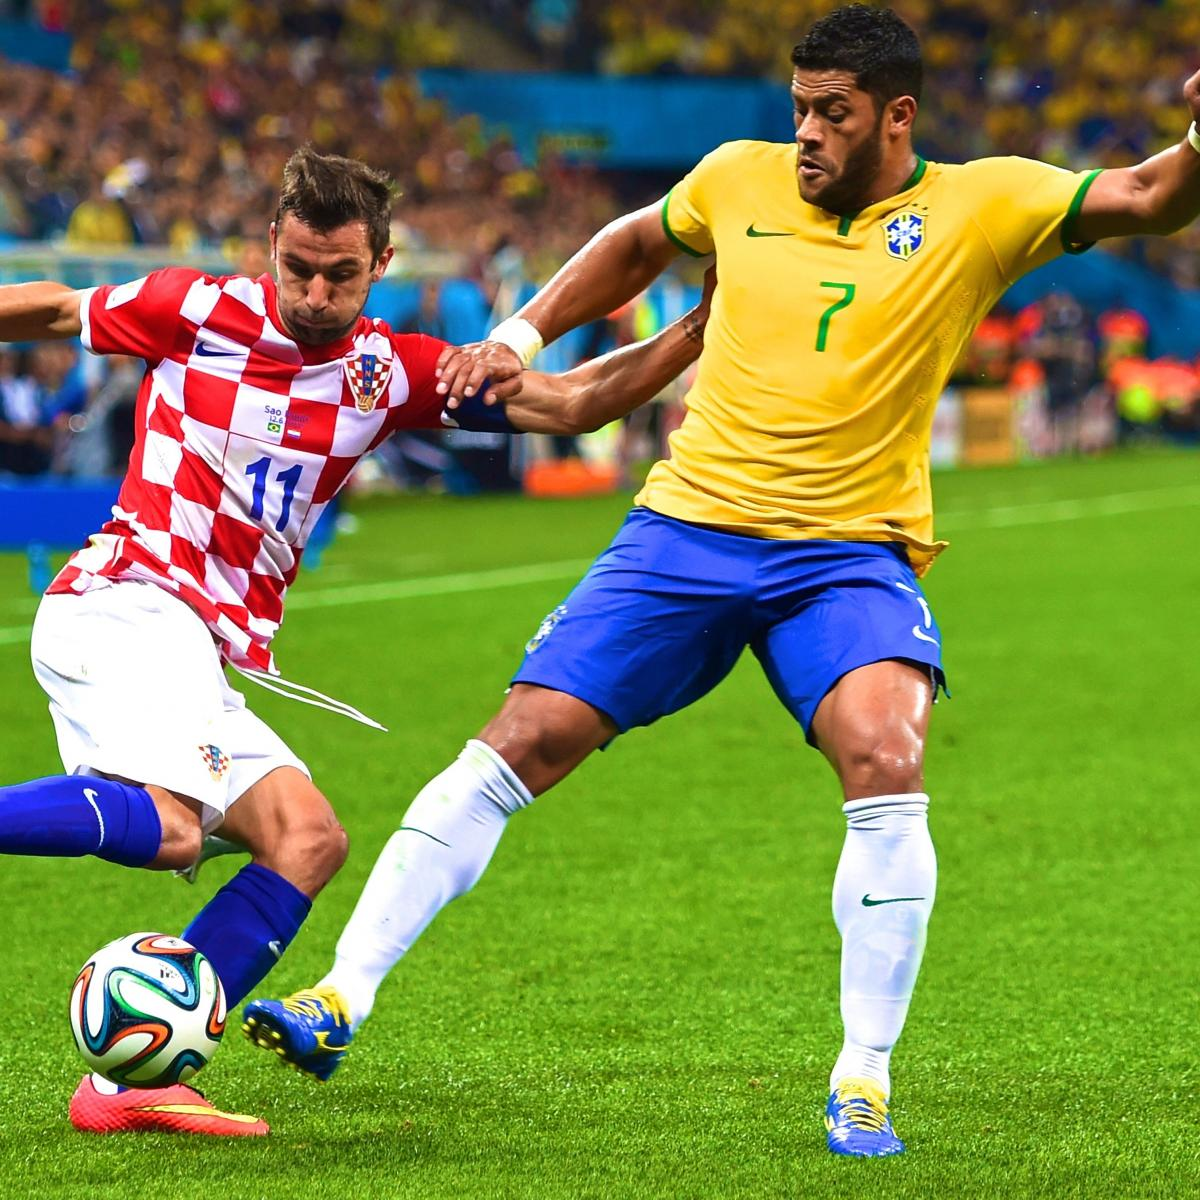 Hulk Brazil Football: Brazil Will Improve Even Without Injured Hulk In World Cup